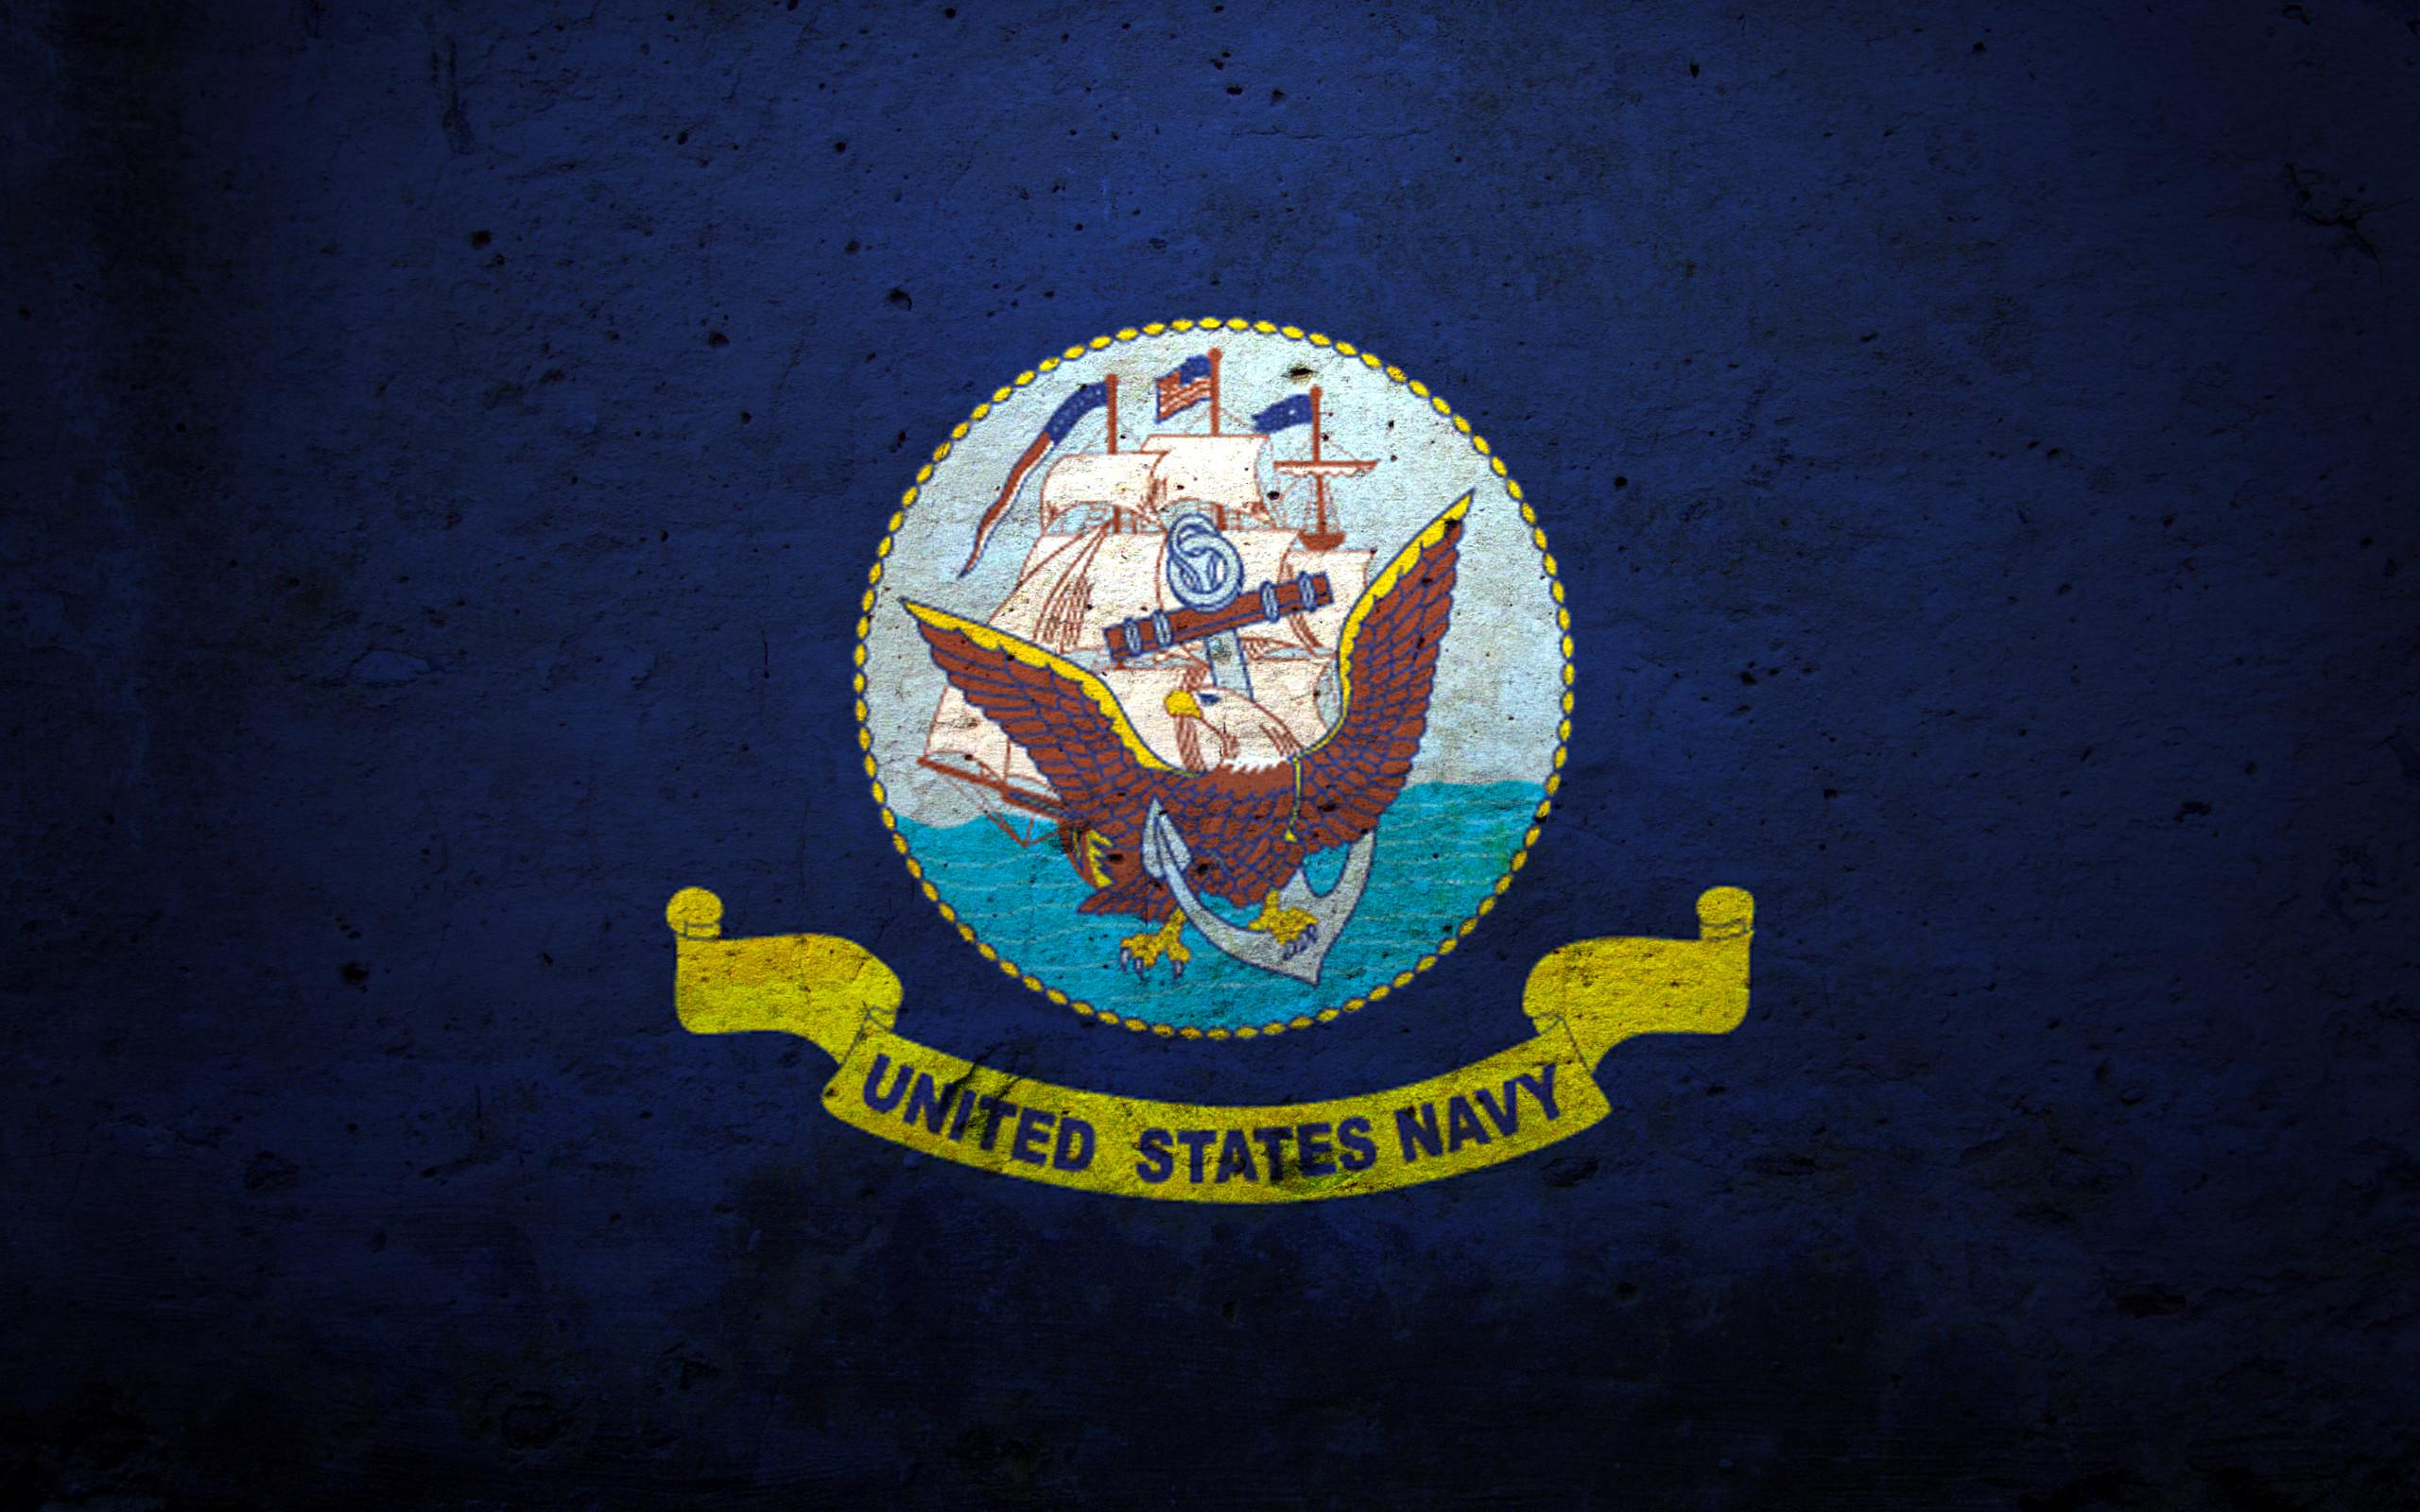 Download Navy Logo Wallpaper Hd Backgrounds Download Itlcat